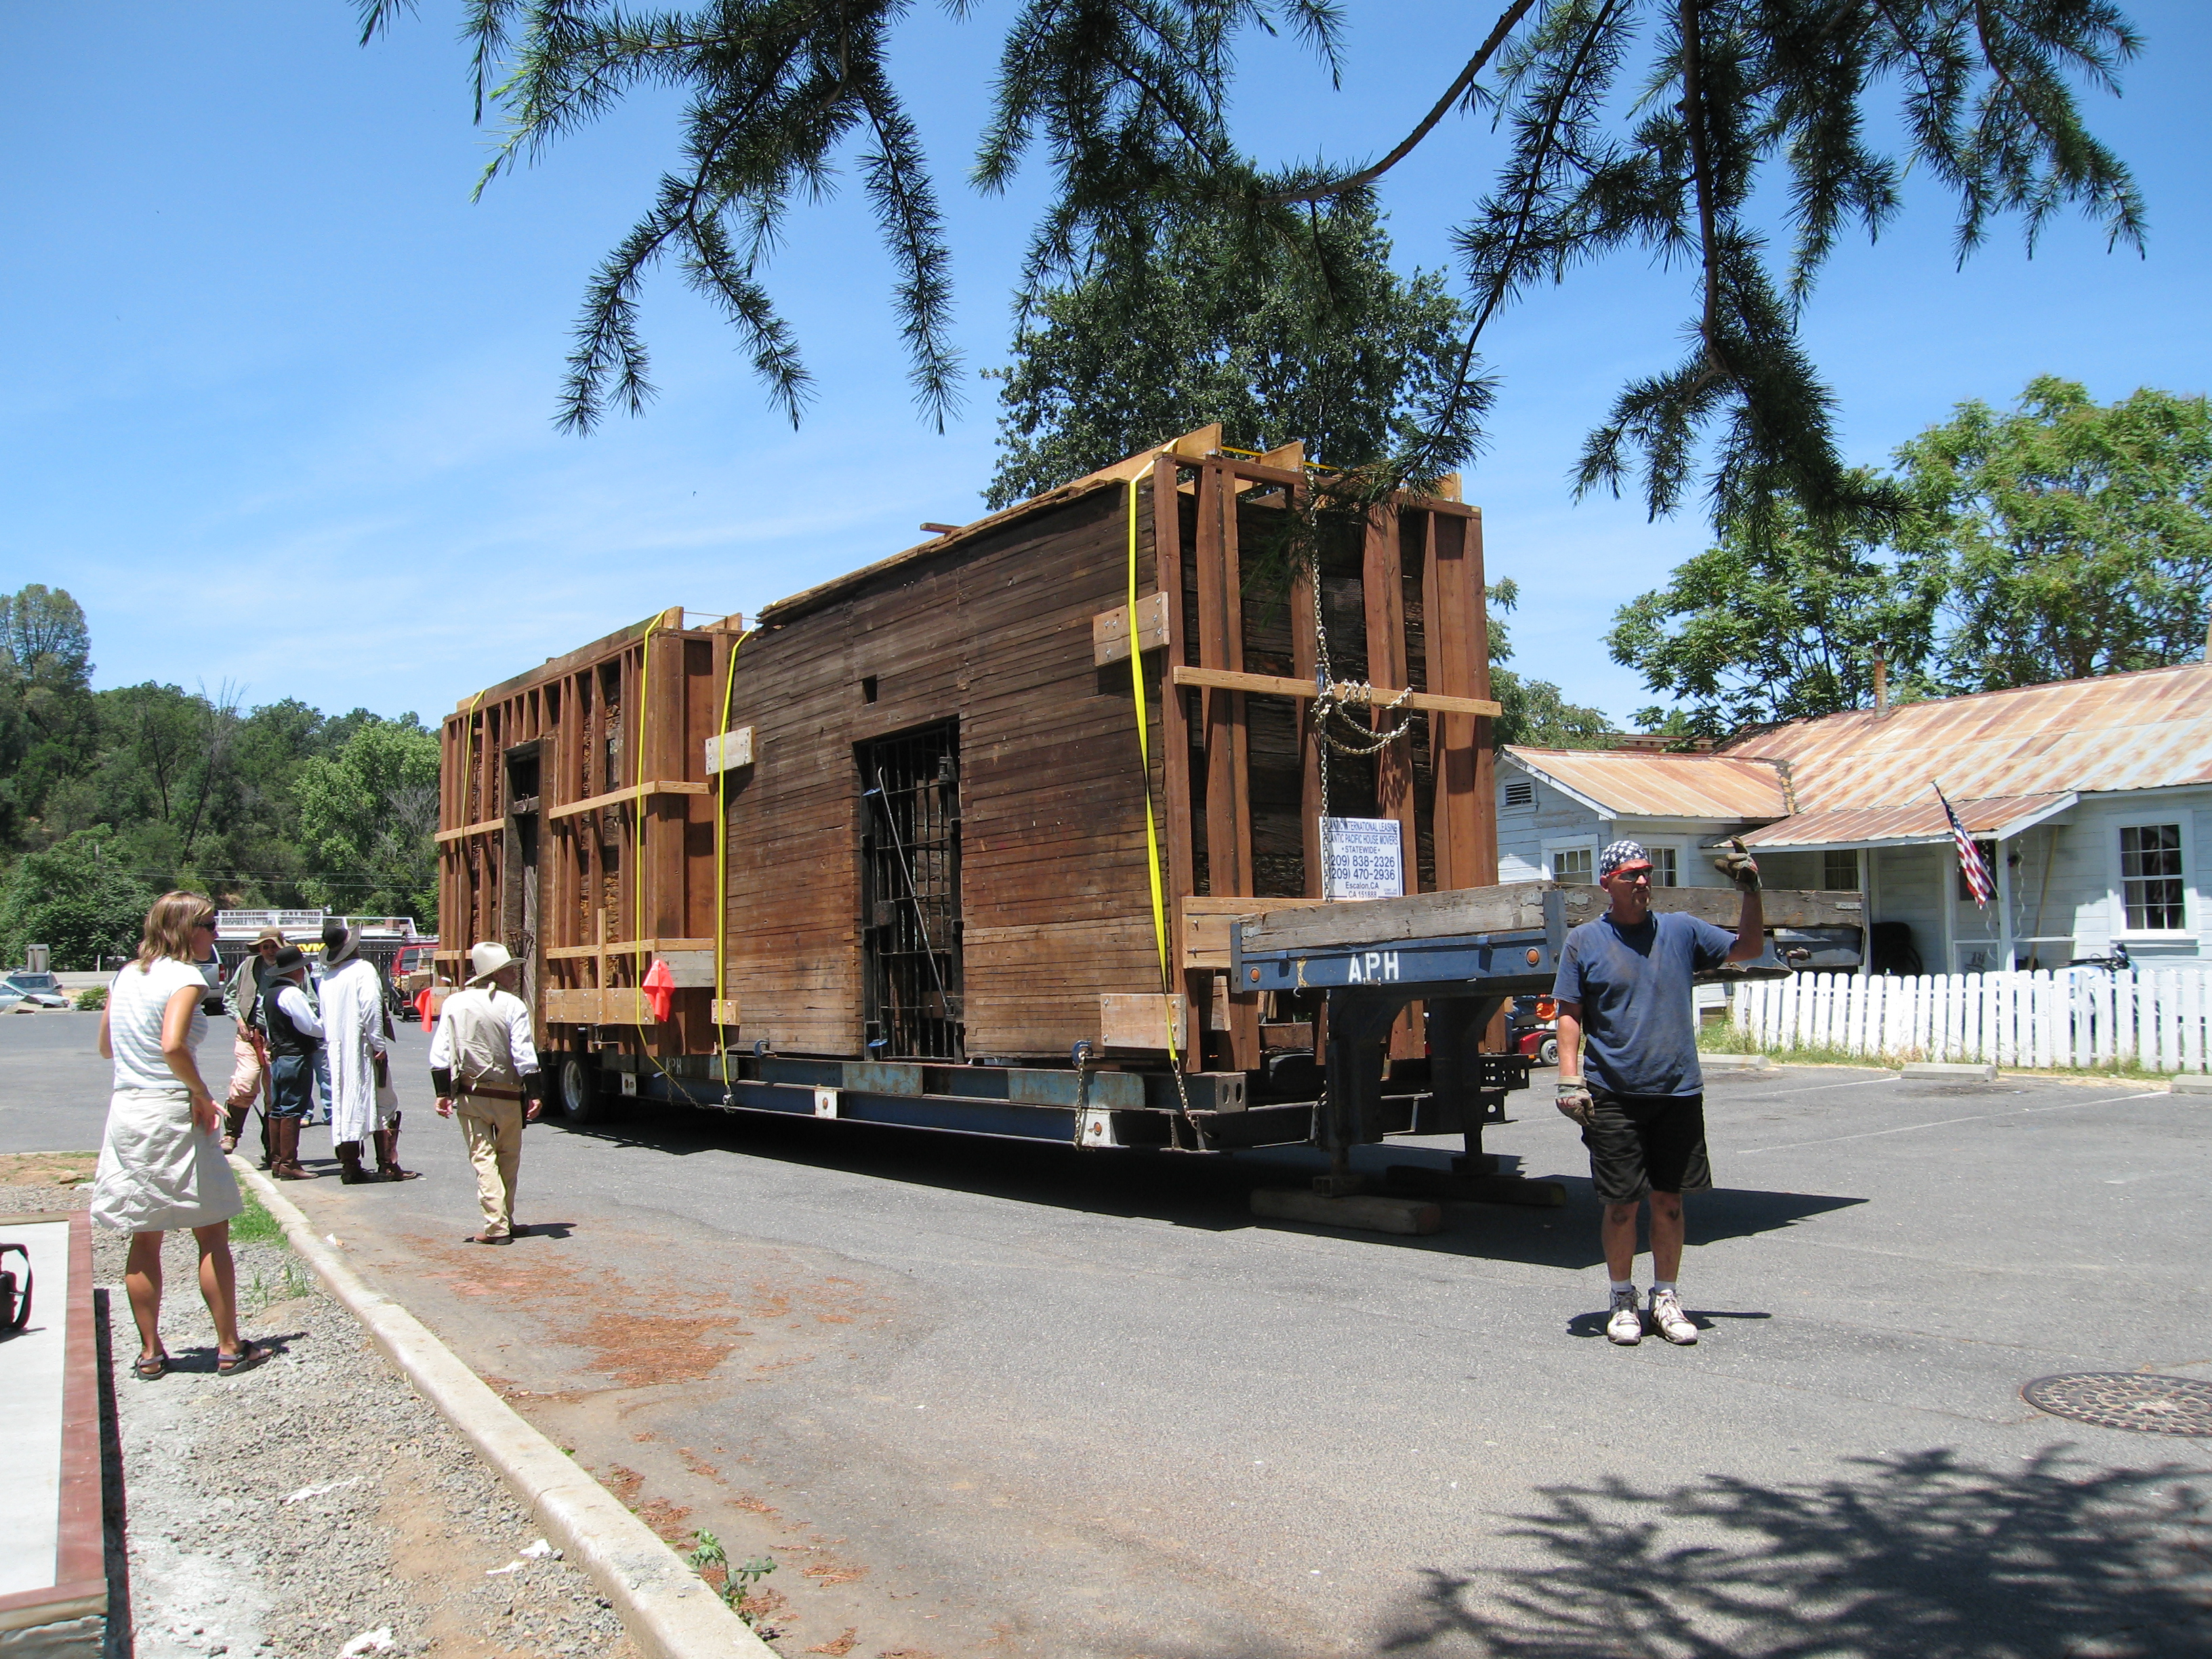 The historic Jamestown Branch Jail being returned in 2007, after being sold and moved to Pollardville in 1964.